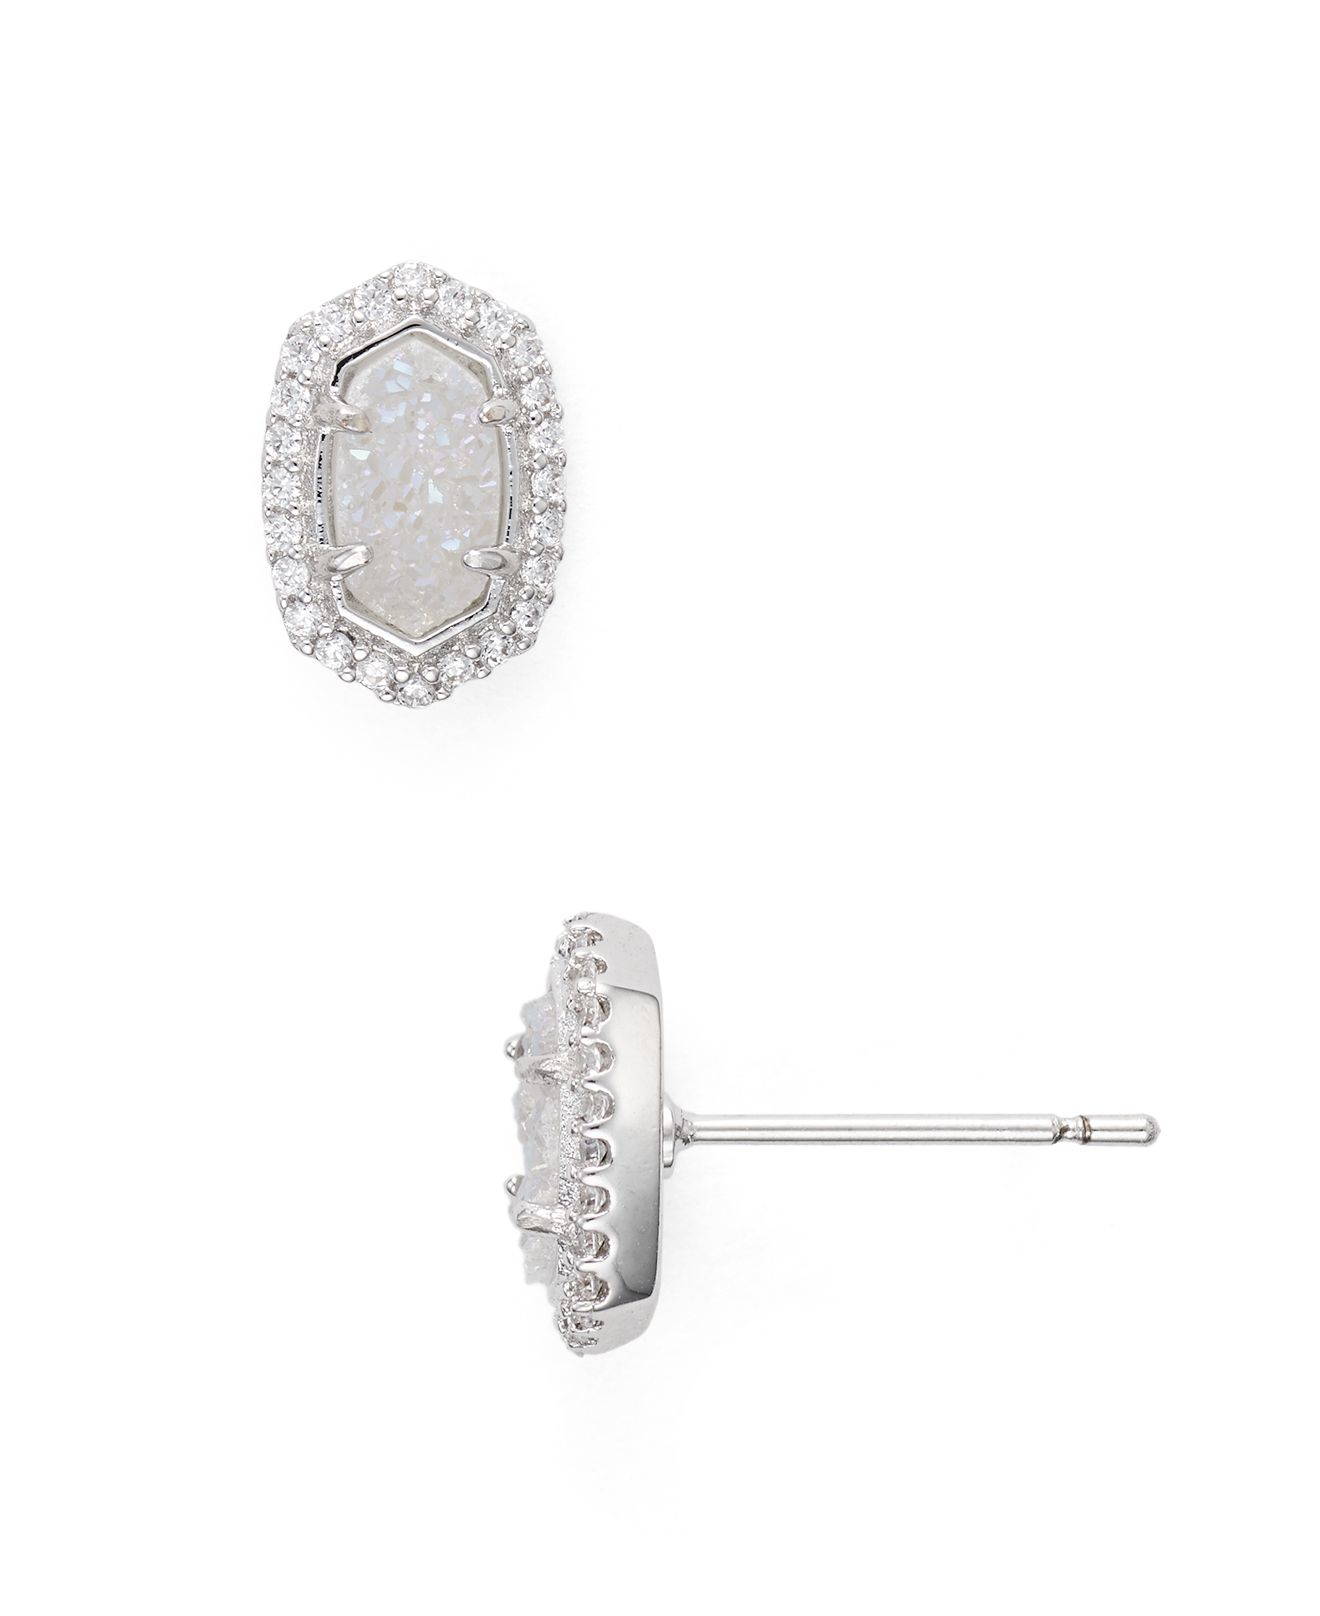 kendra earrings studs lyst kendra cade stud earrings in metallic 3274